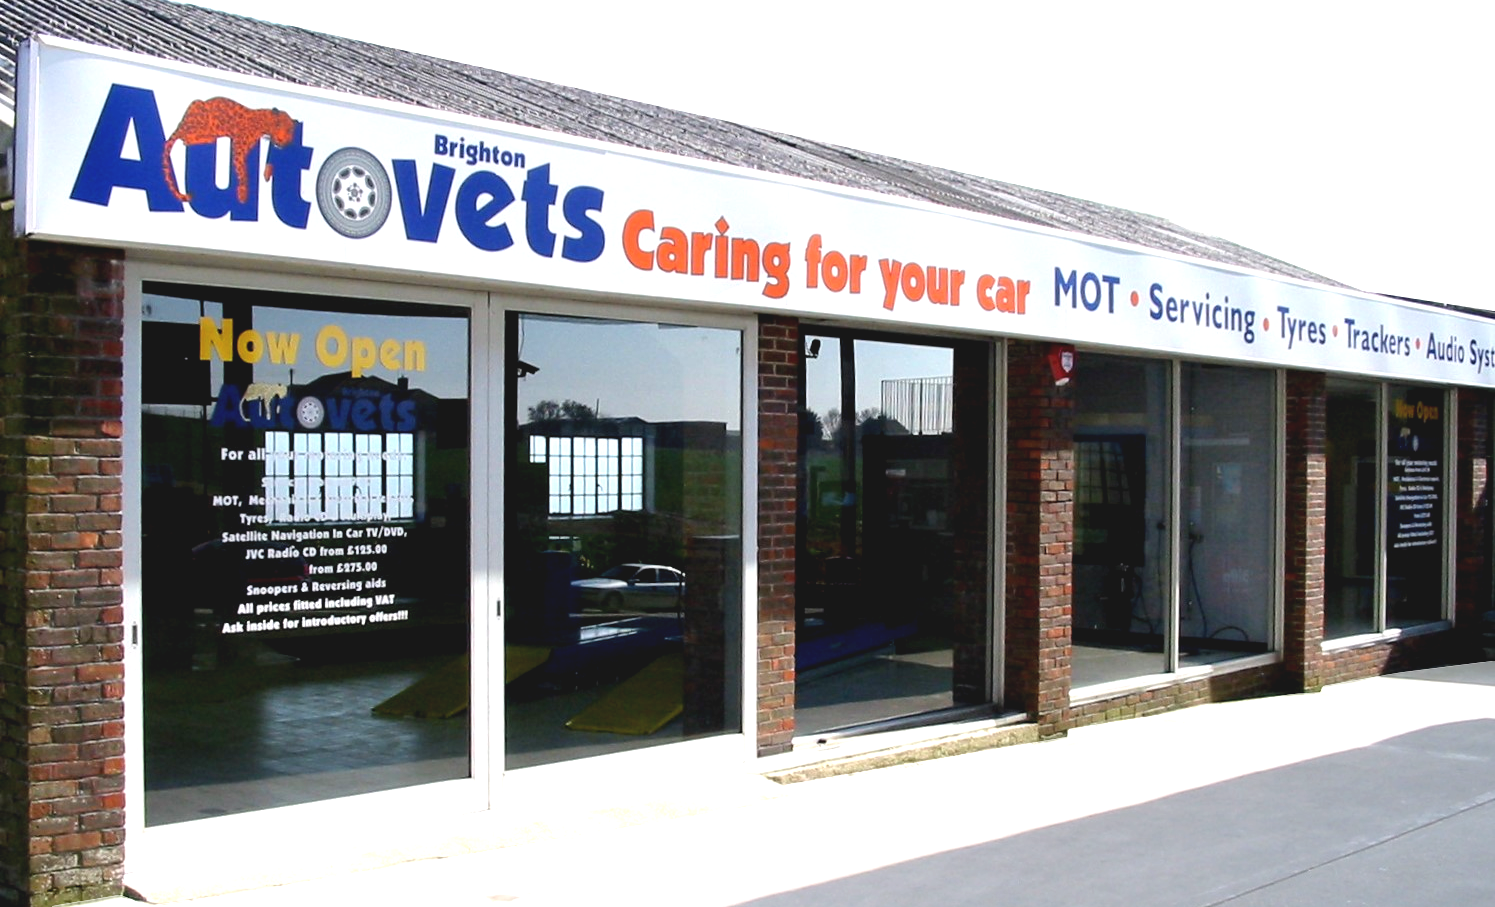 garage brighton,car servicing brighton,car repair brighton,mot brighton